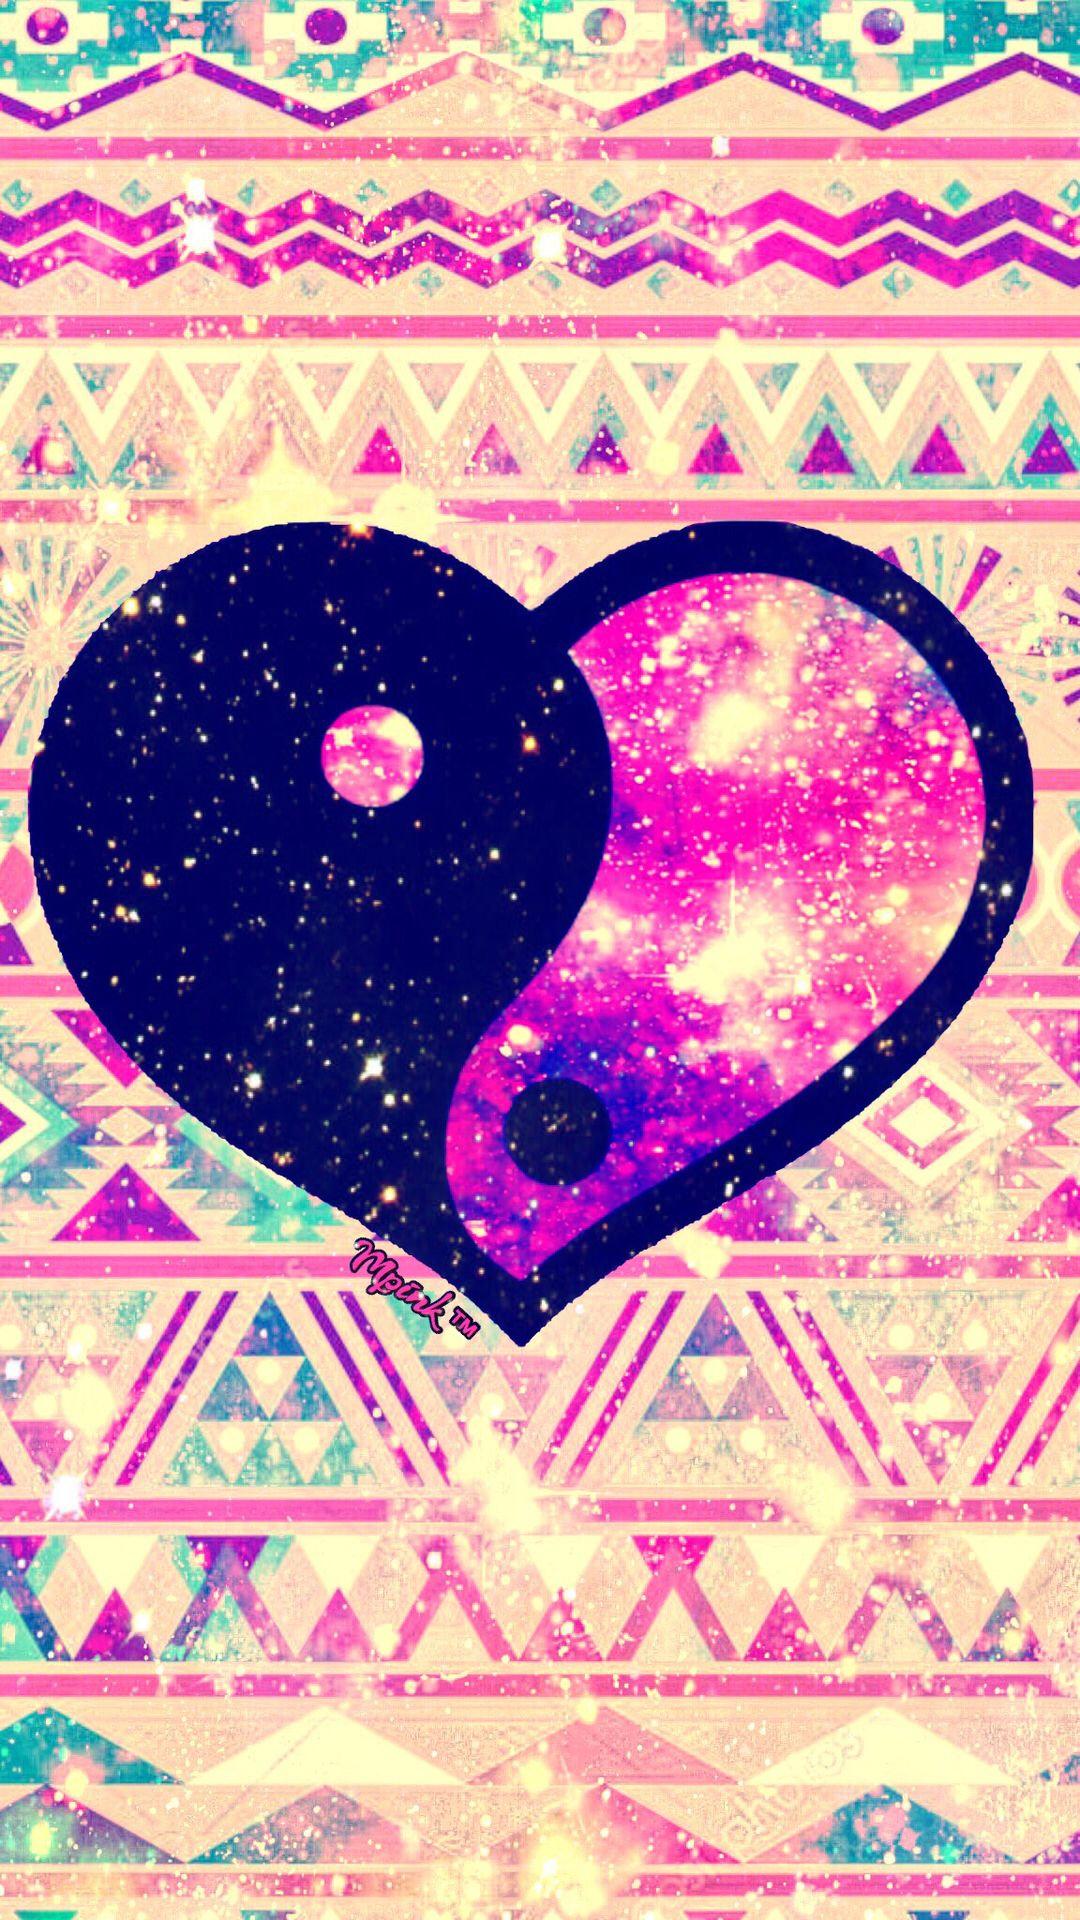 Shimmer Tribal Heart Galaxy Wallpaper androidwallpaper